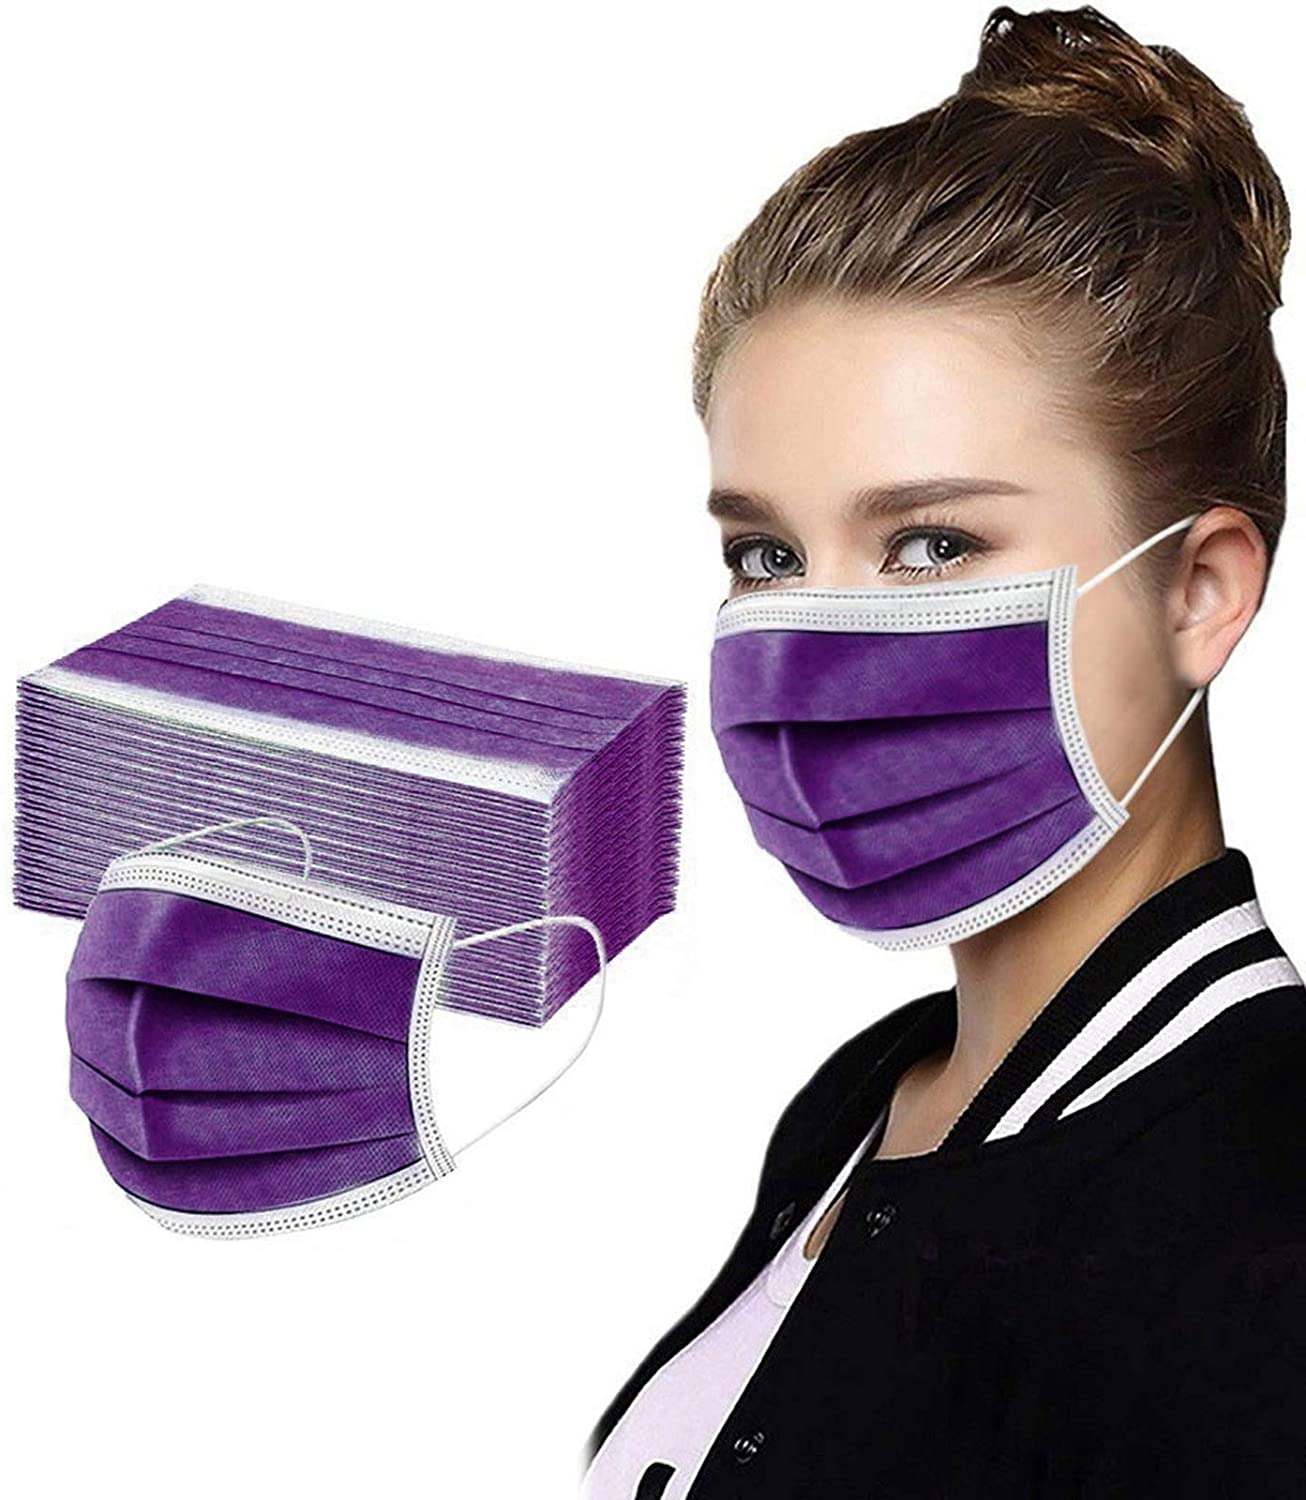 AIHOU 50Pcs Disposable Face Mask Breathable Comfortable 3 Ply Earloop Nose Bridge Protective Cloth Masks Outdoor Office Work Home Travel